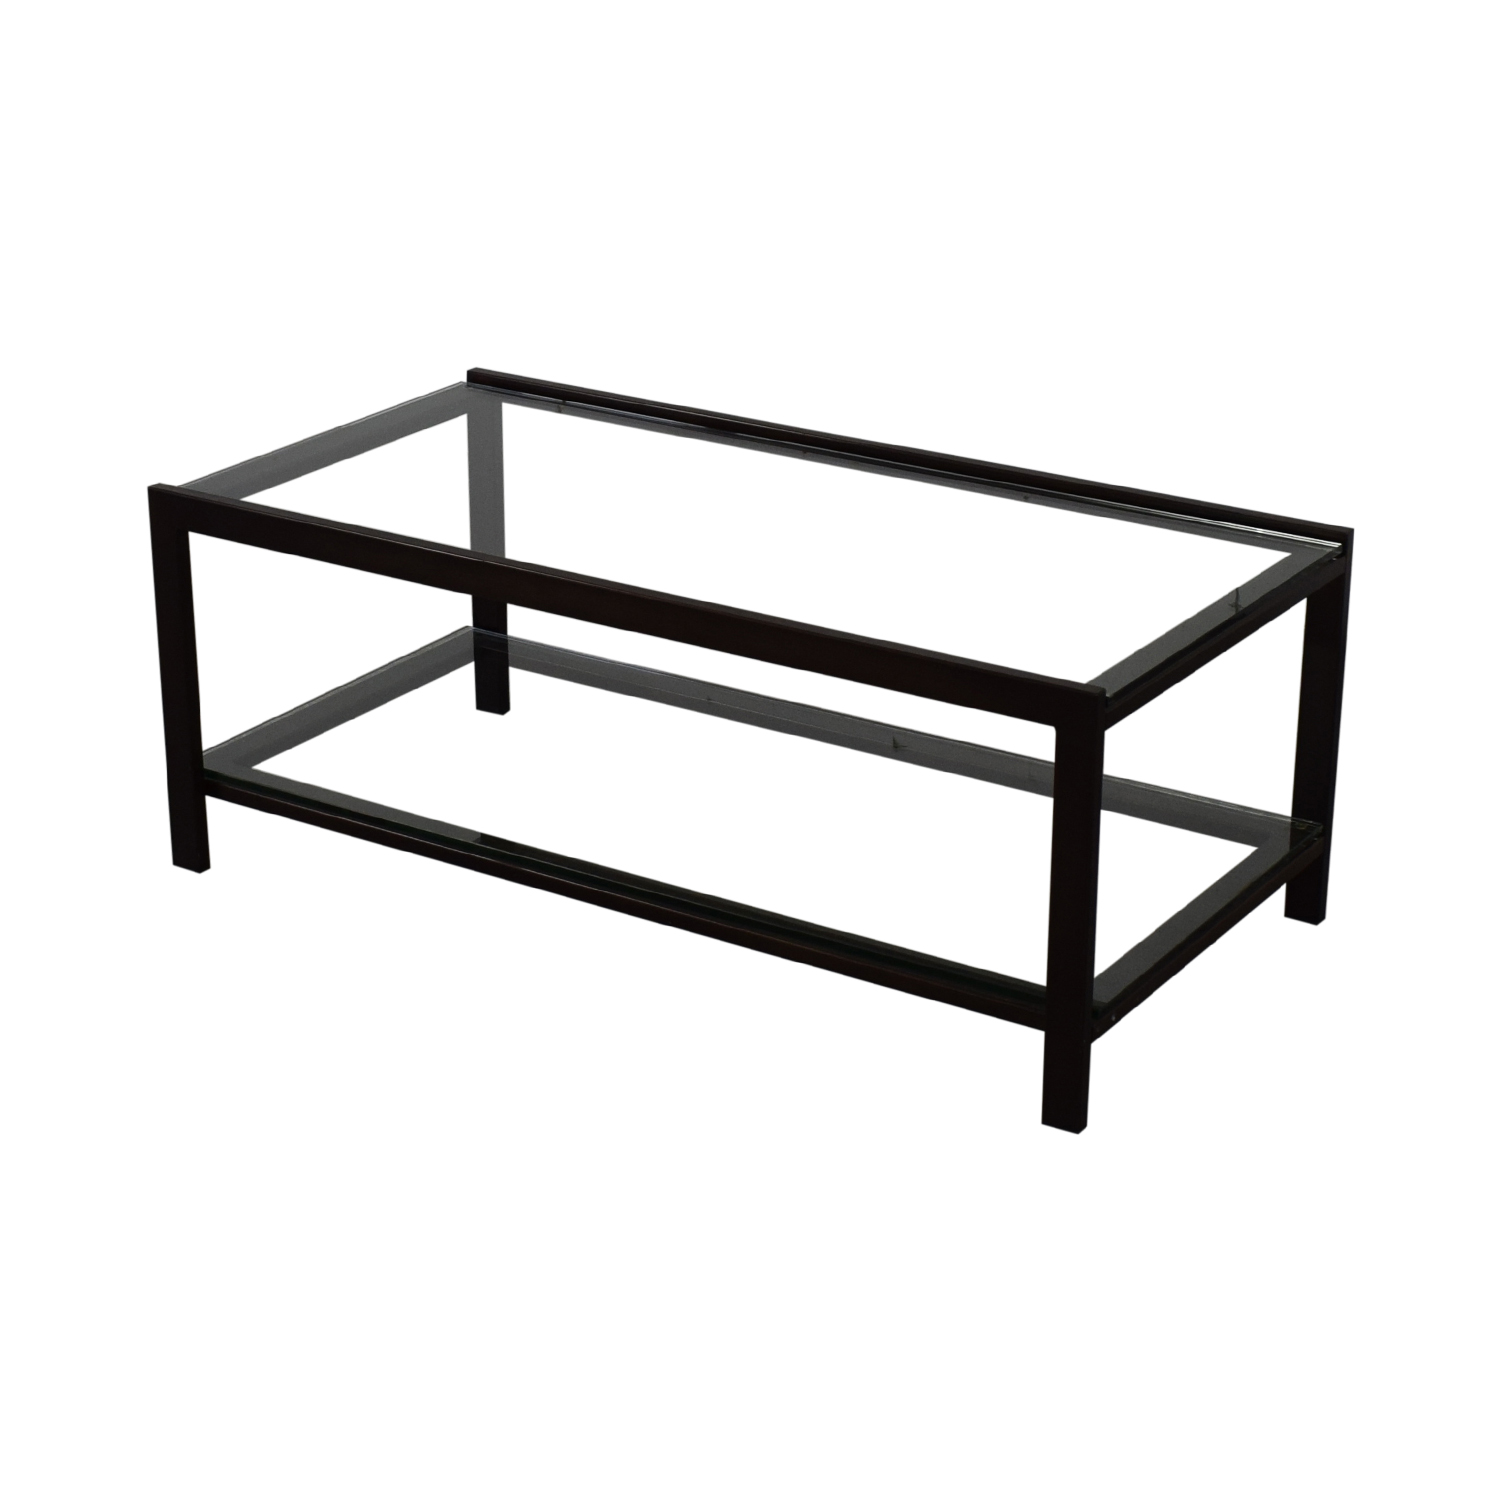 buy Crate & Barrel Glass Coffee Table Crate & Barrel